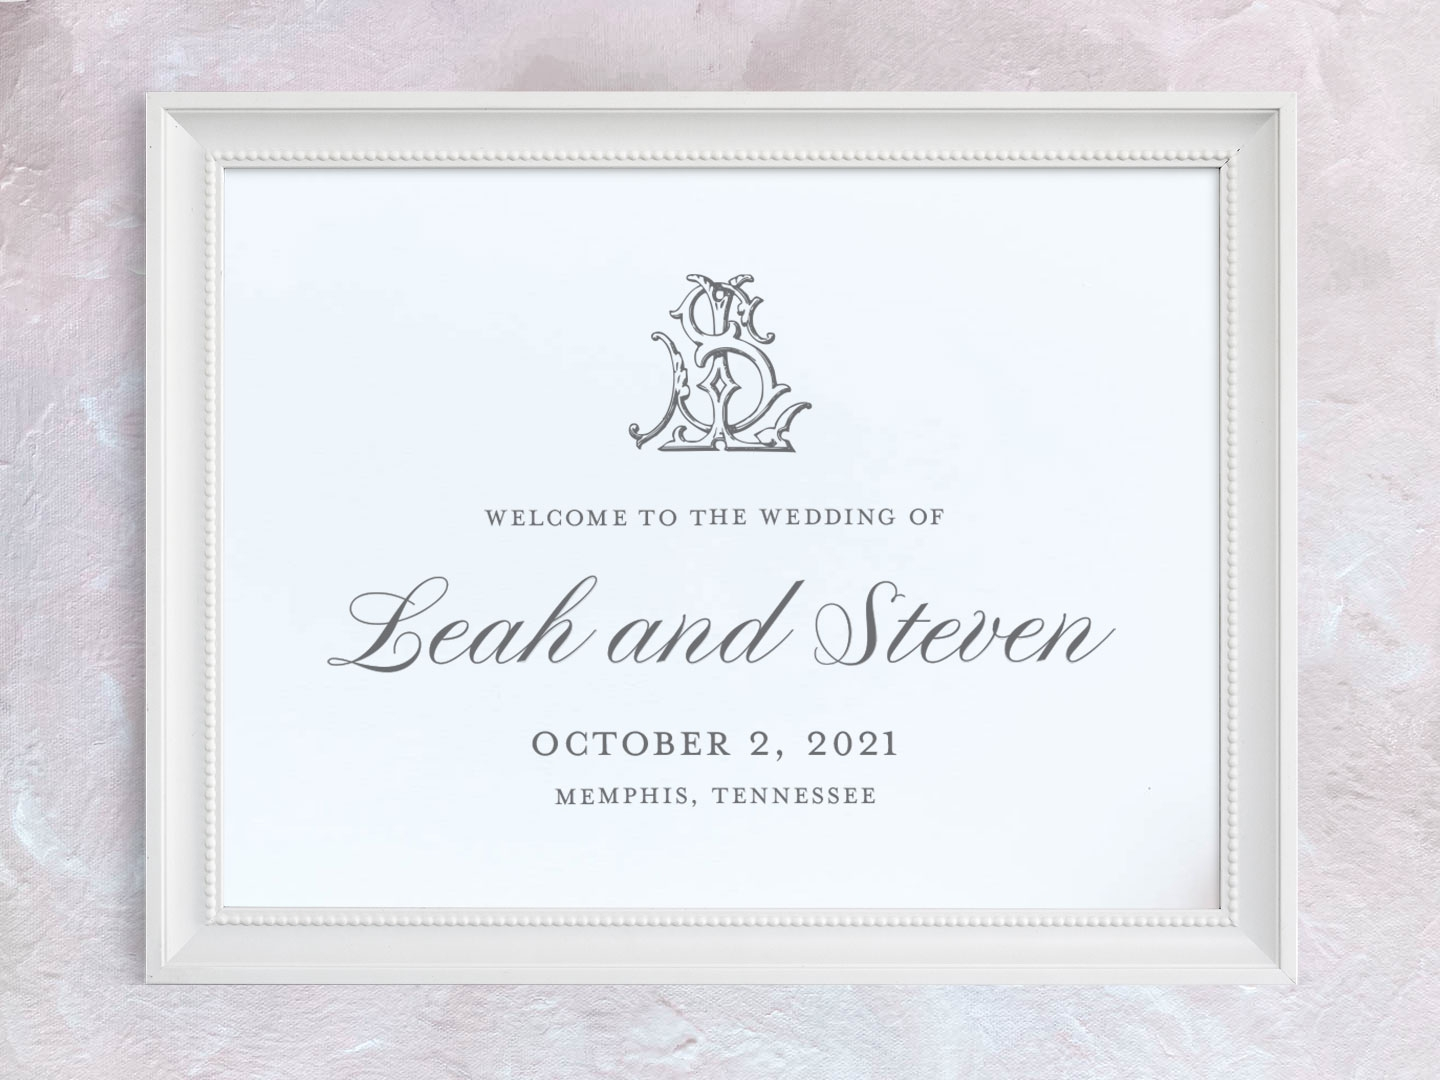 Wedding welcome sign with classic script font and interlocking monogram.